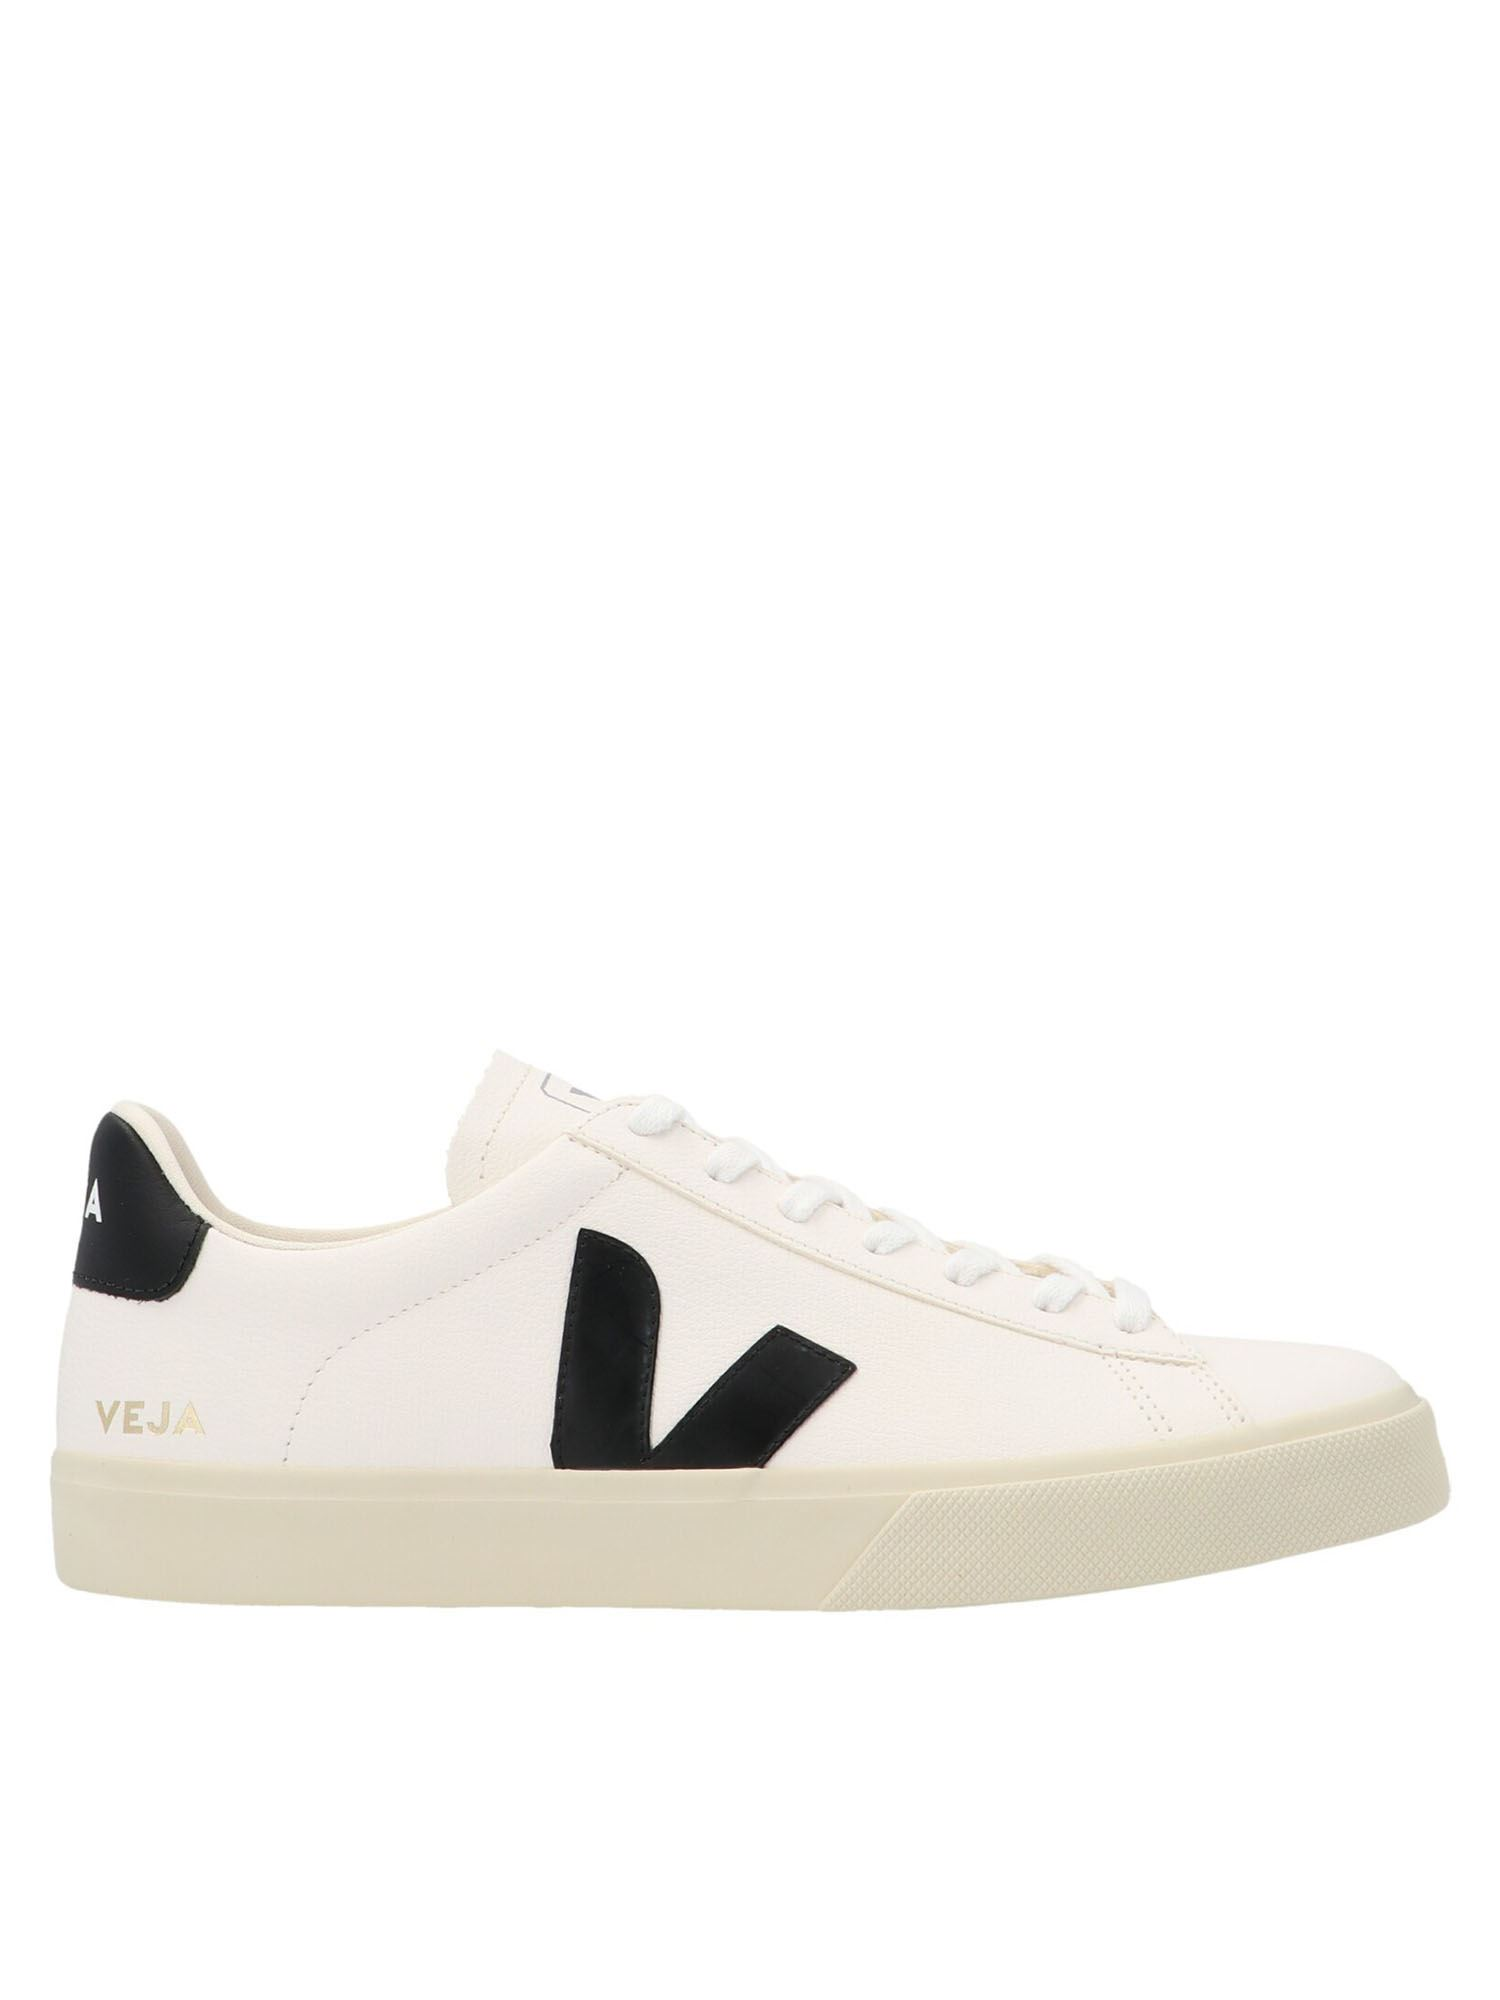 Veja Leathers CAMPO SNEAKERS IN WHITE